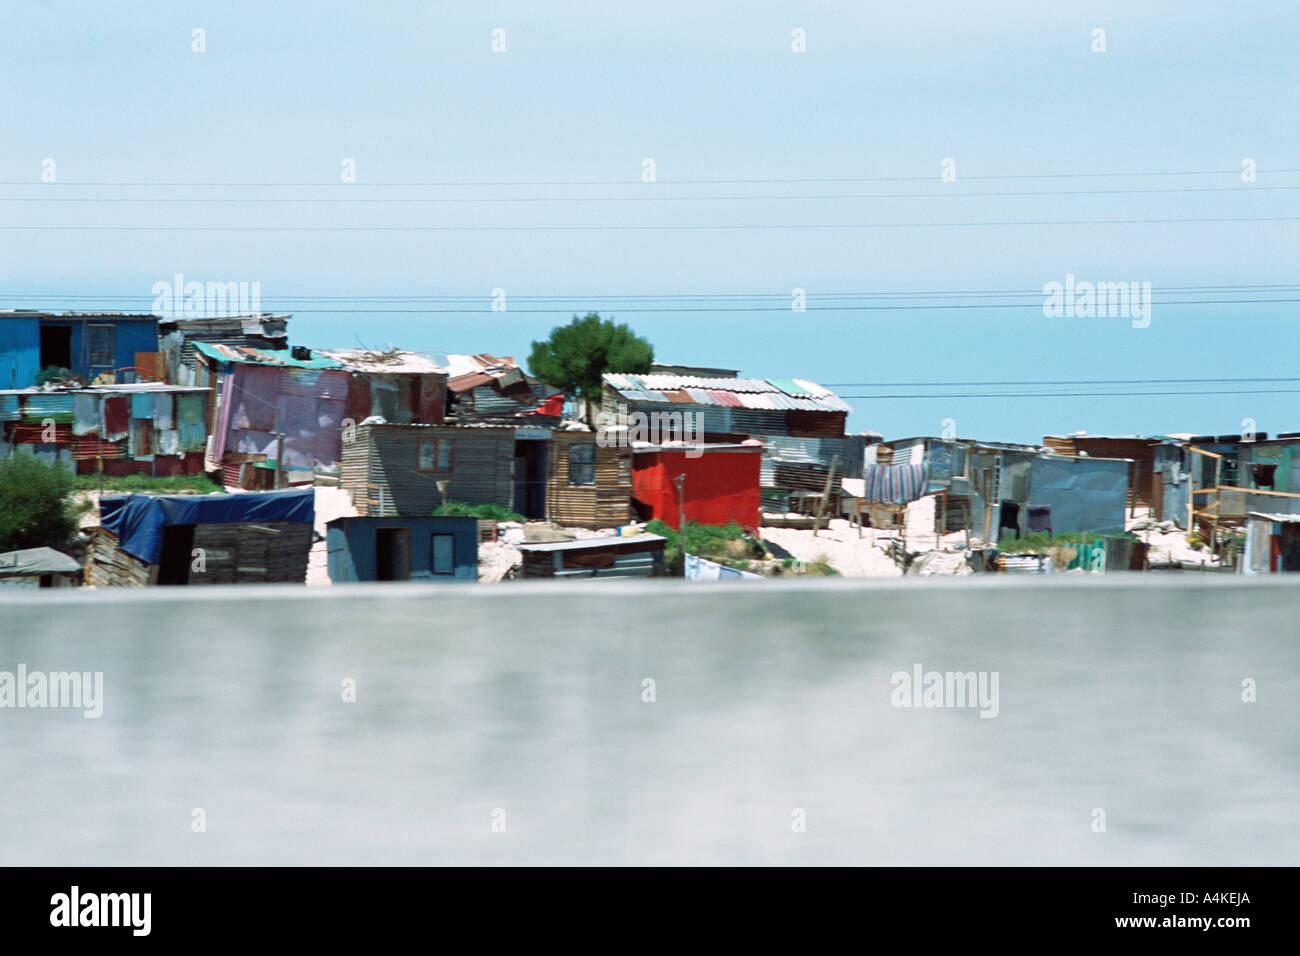 South Africa, Western Cape, shanty town - Stock Image